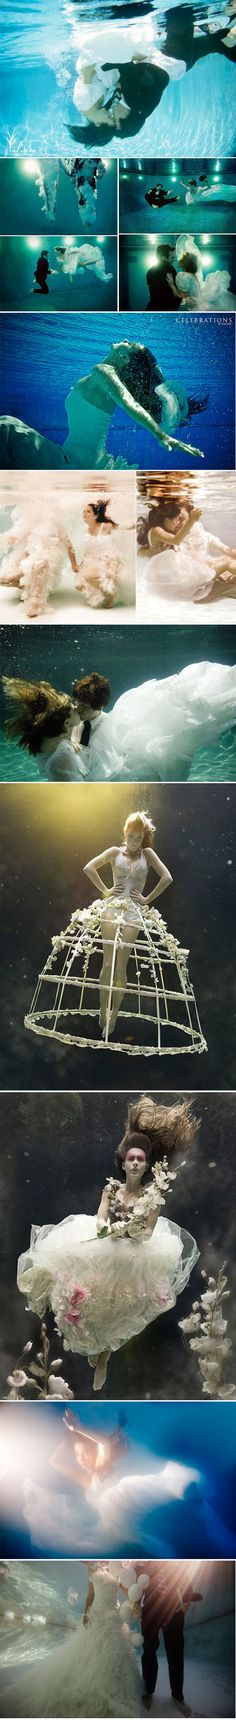 Underwater Wedding pictures! I want this!!